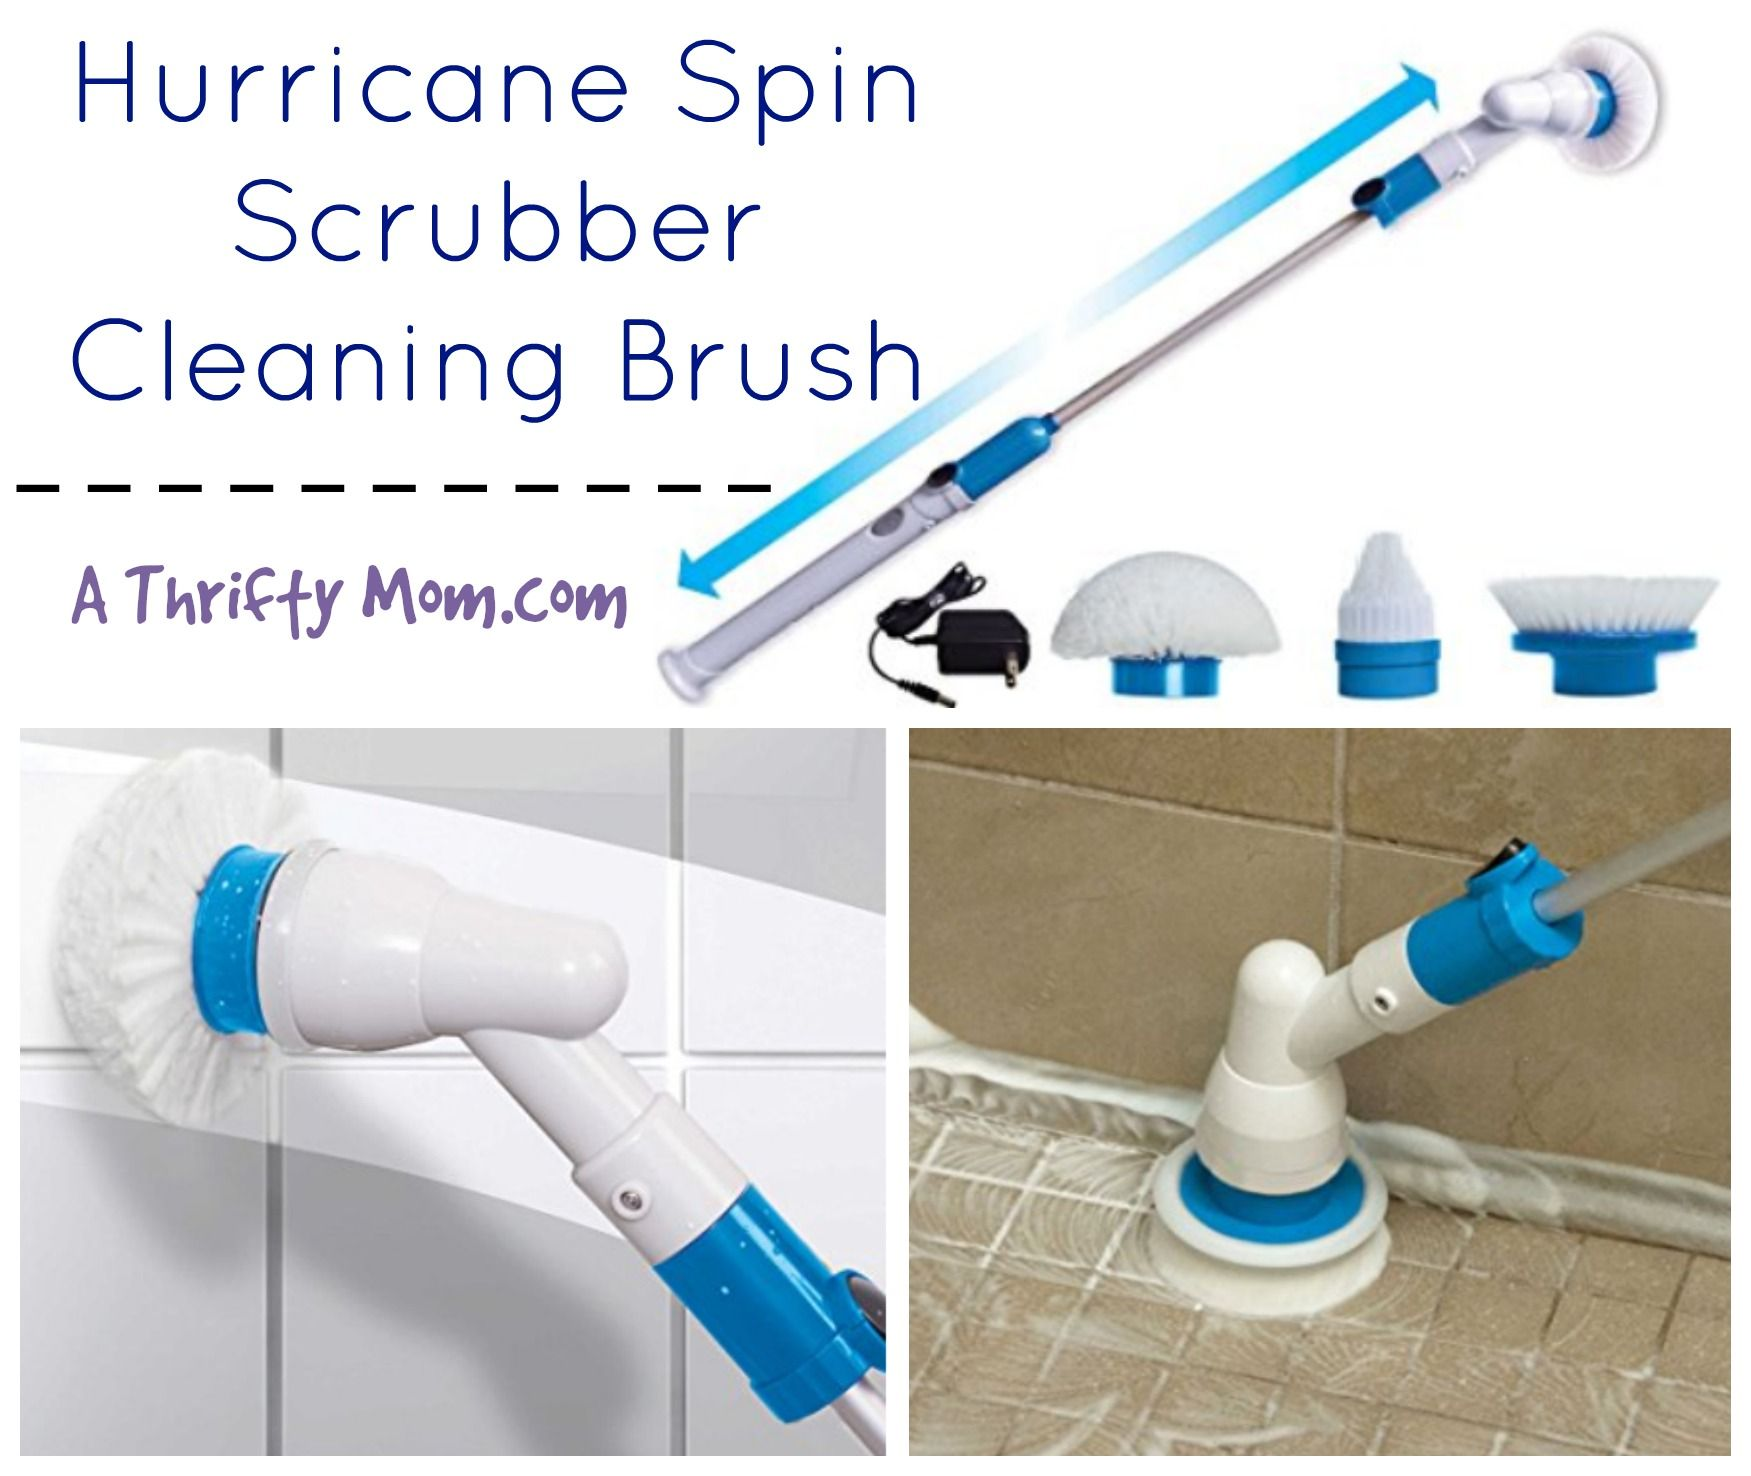 Hurricane Spin Scrubber Cleaning Brush Clean Bathrooms Kitchens